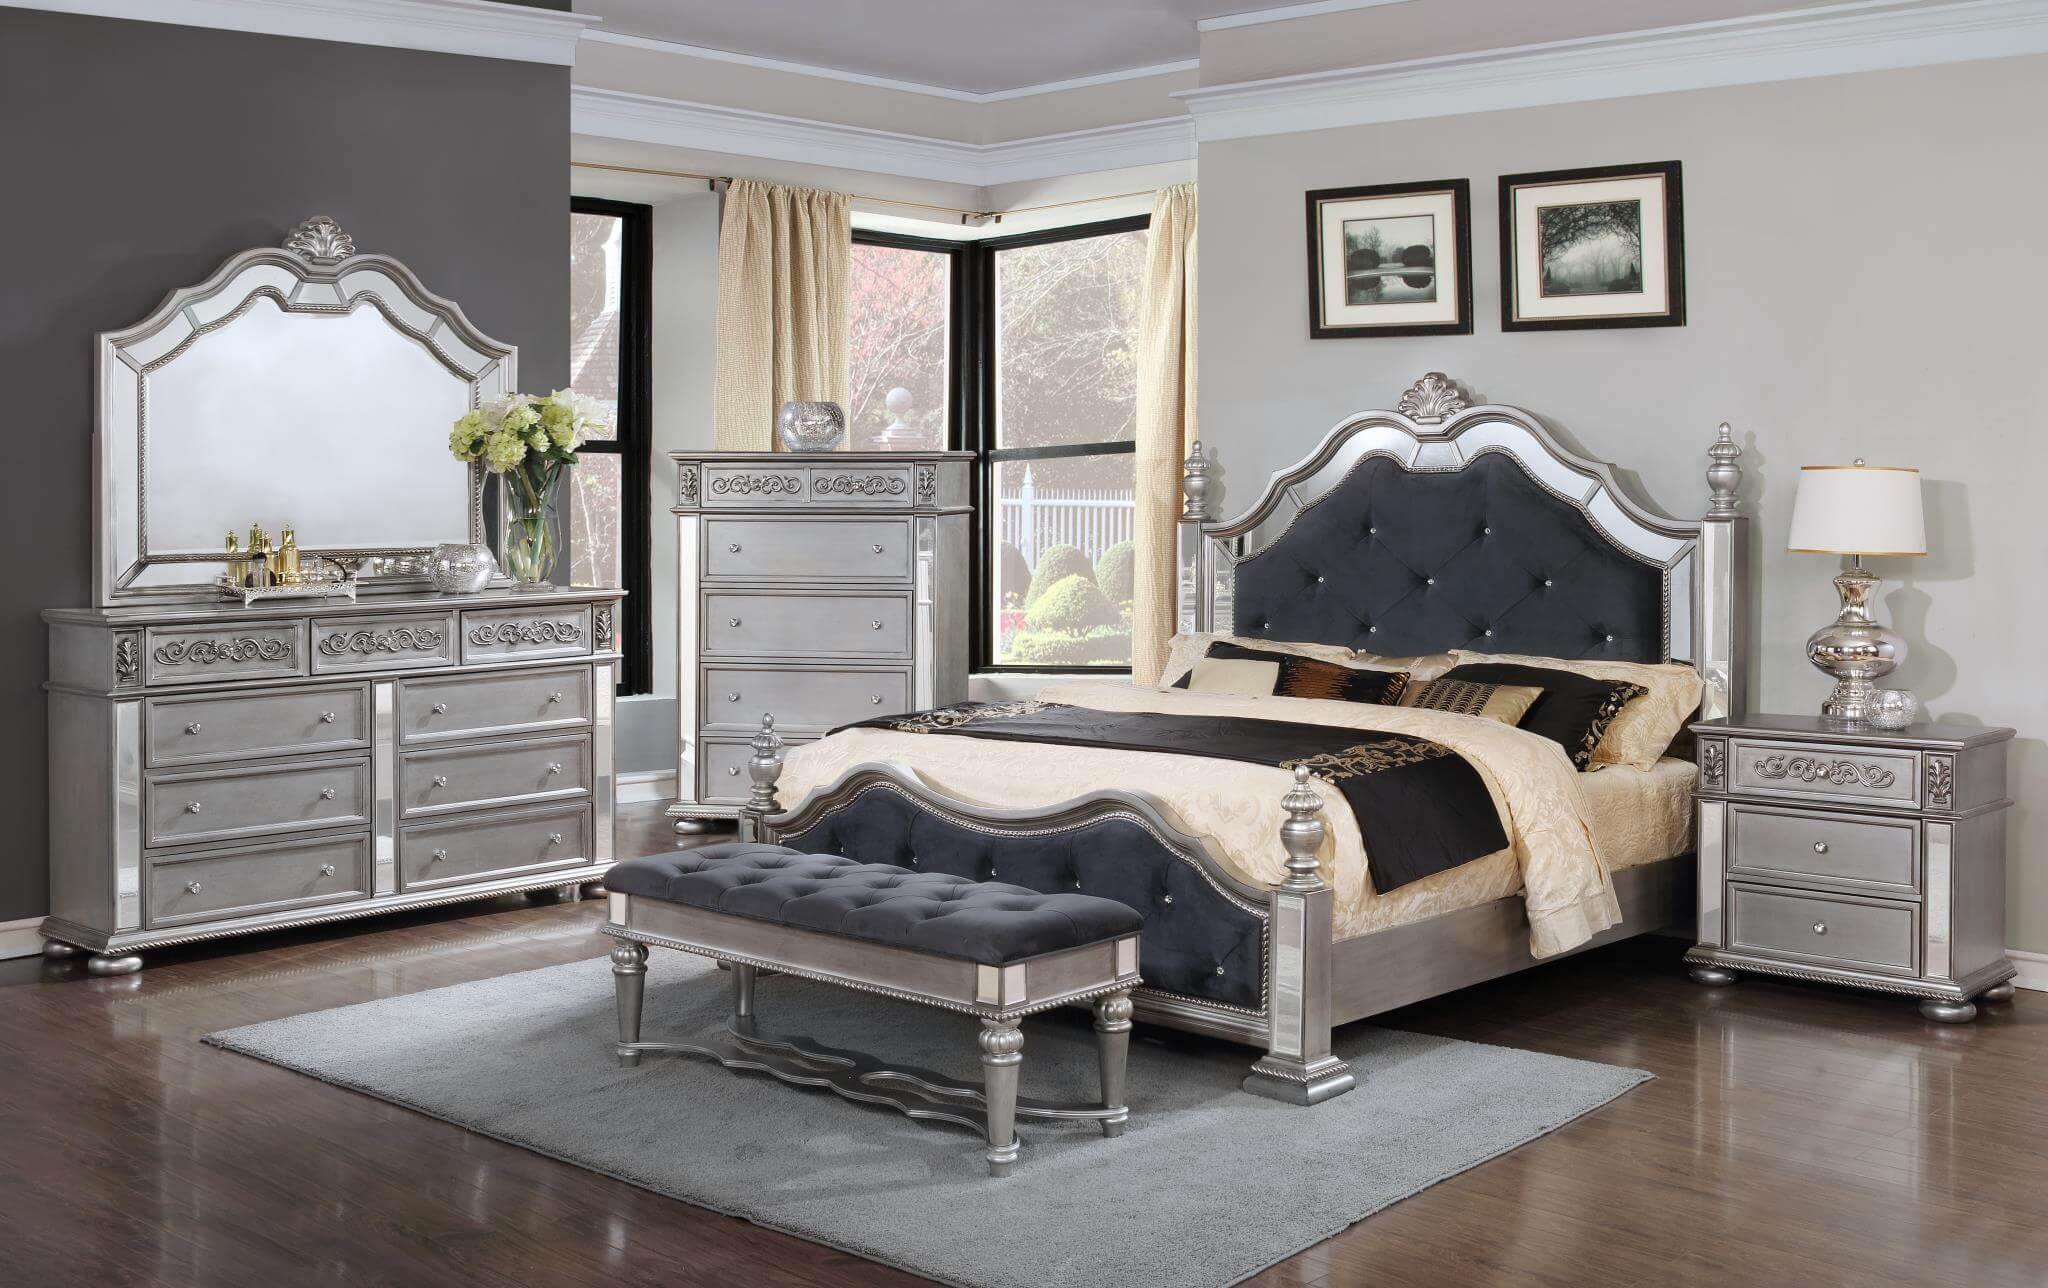 Futuristic Silver Bedroom Set Decoration